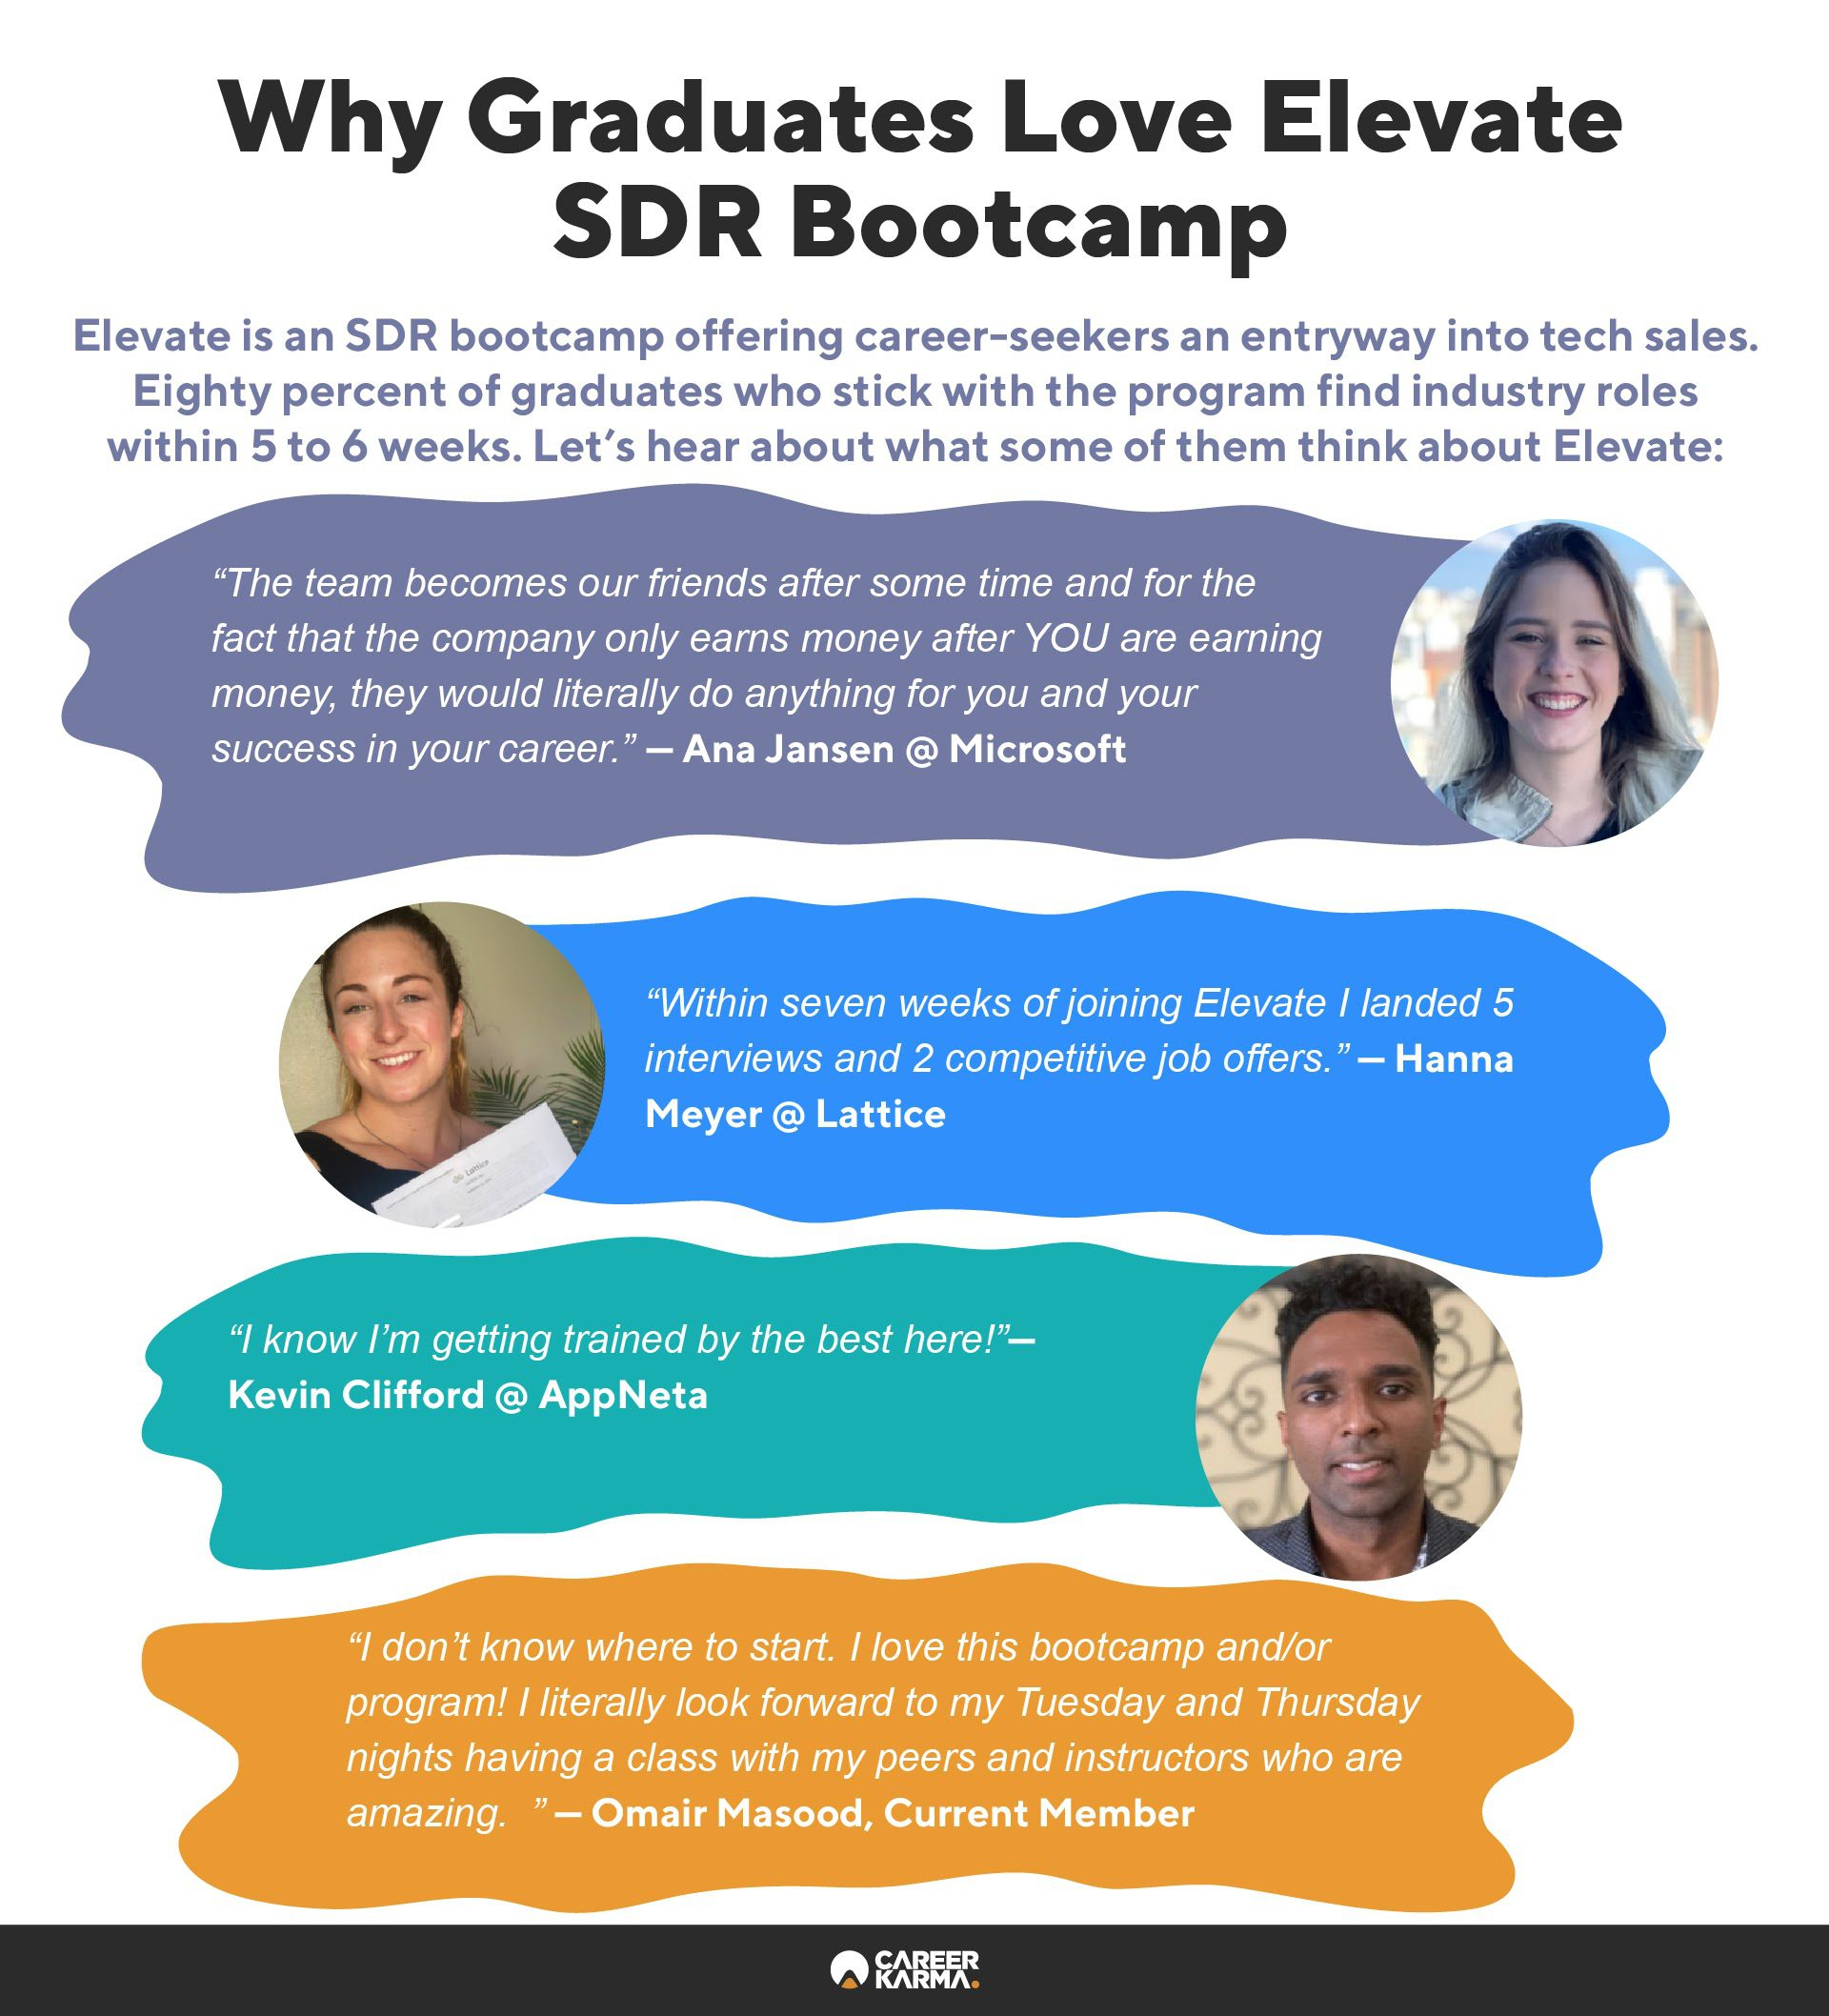 An infographic showing alumni reviews for Elevate bootcamp